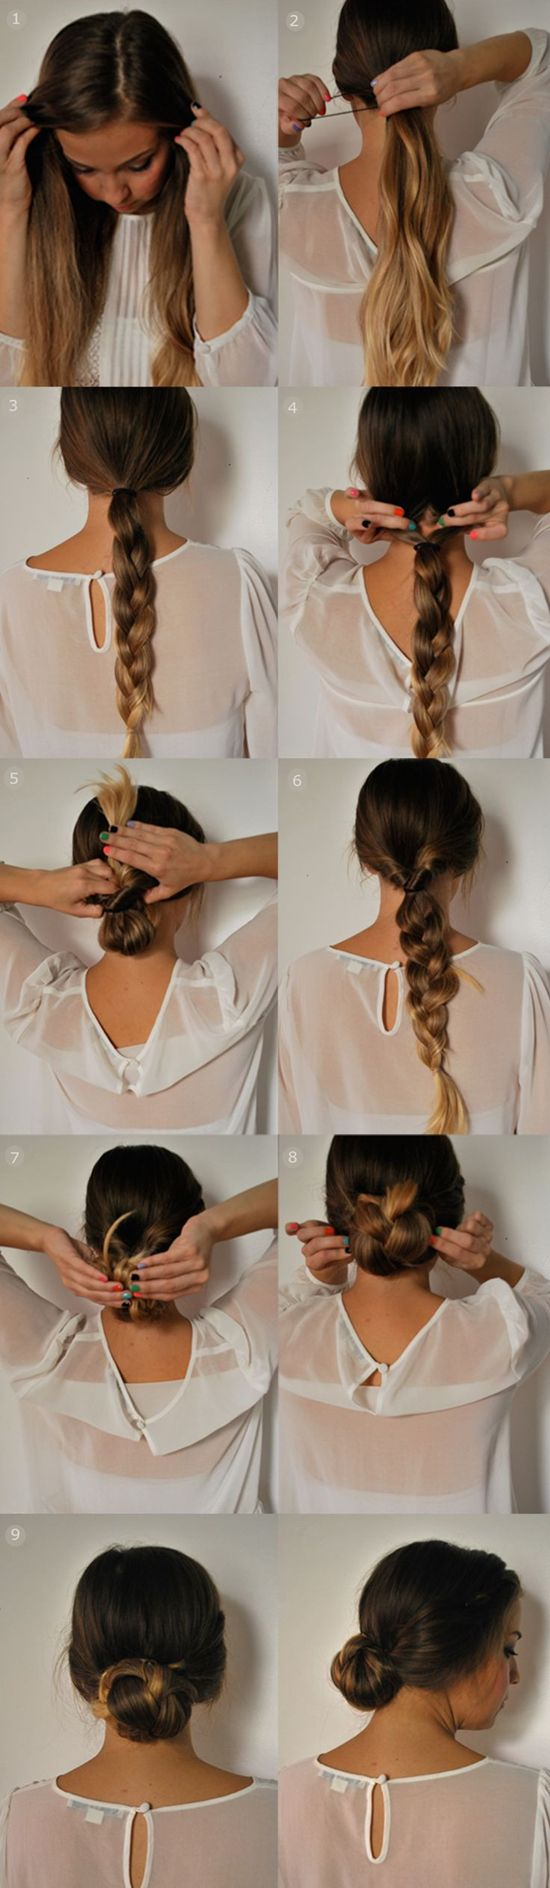 DIY | Easy Braided Bun Tutorial